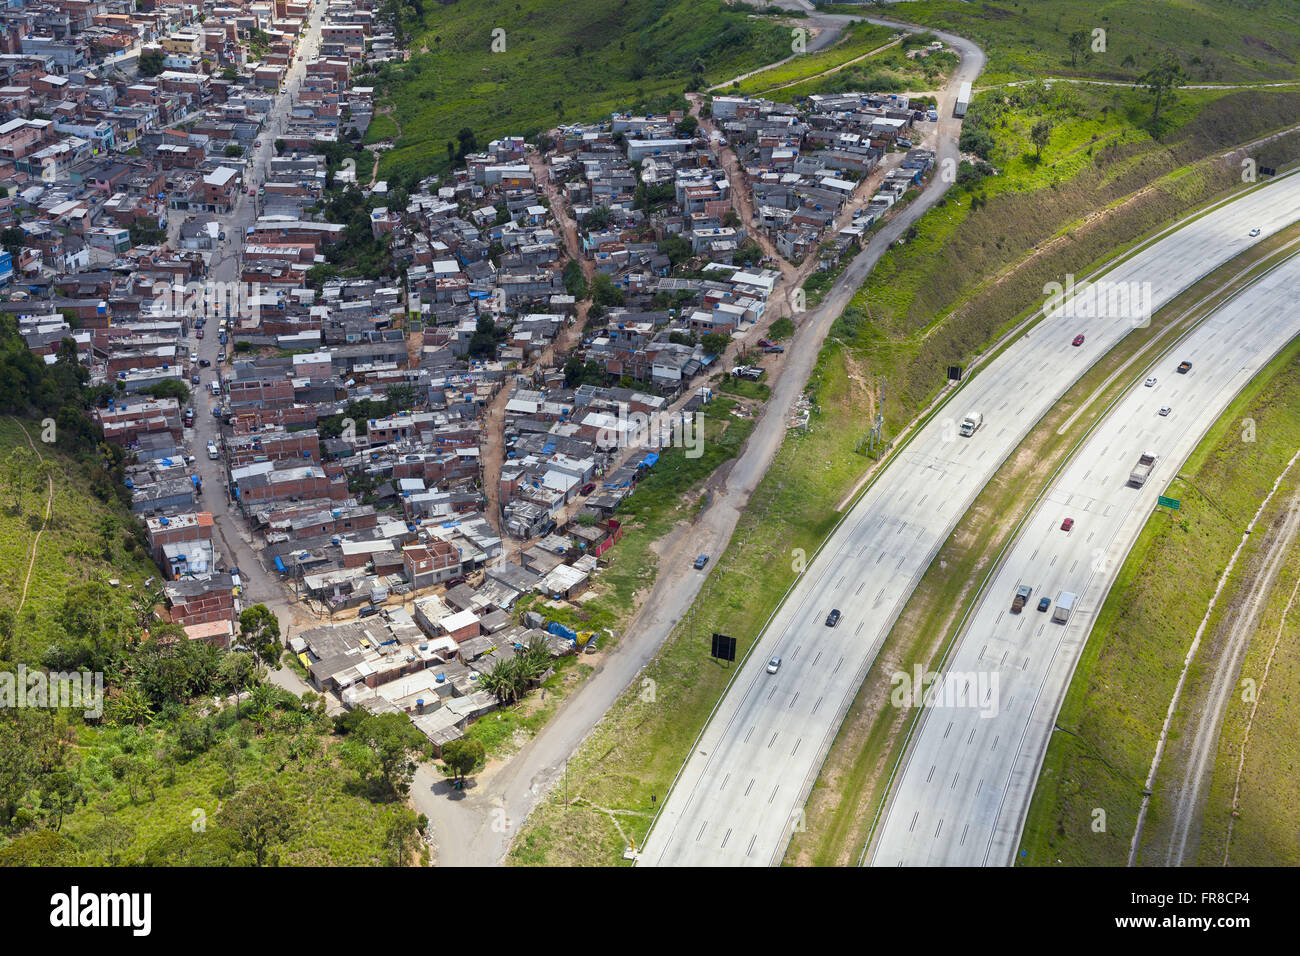 Aerial view of the slum Nook Humble Mario Covas beltway with SP-021 in the background - Stock Image